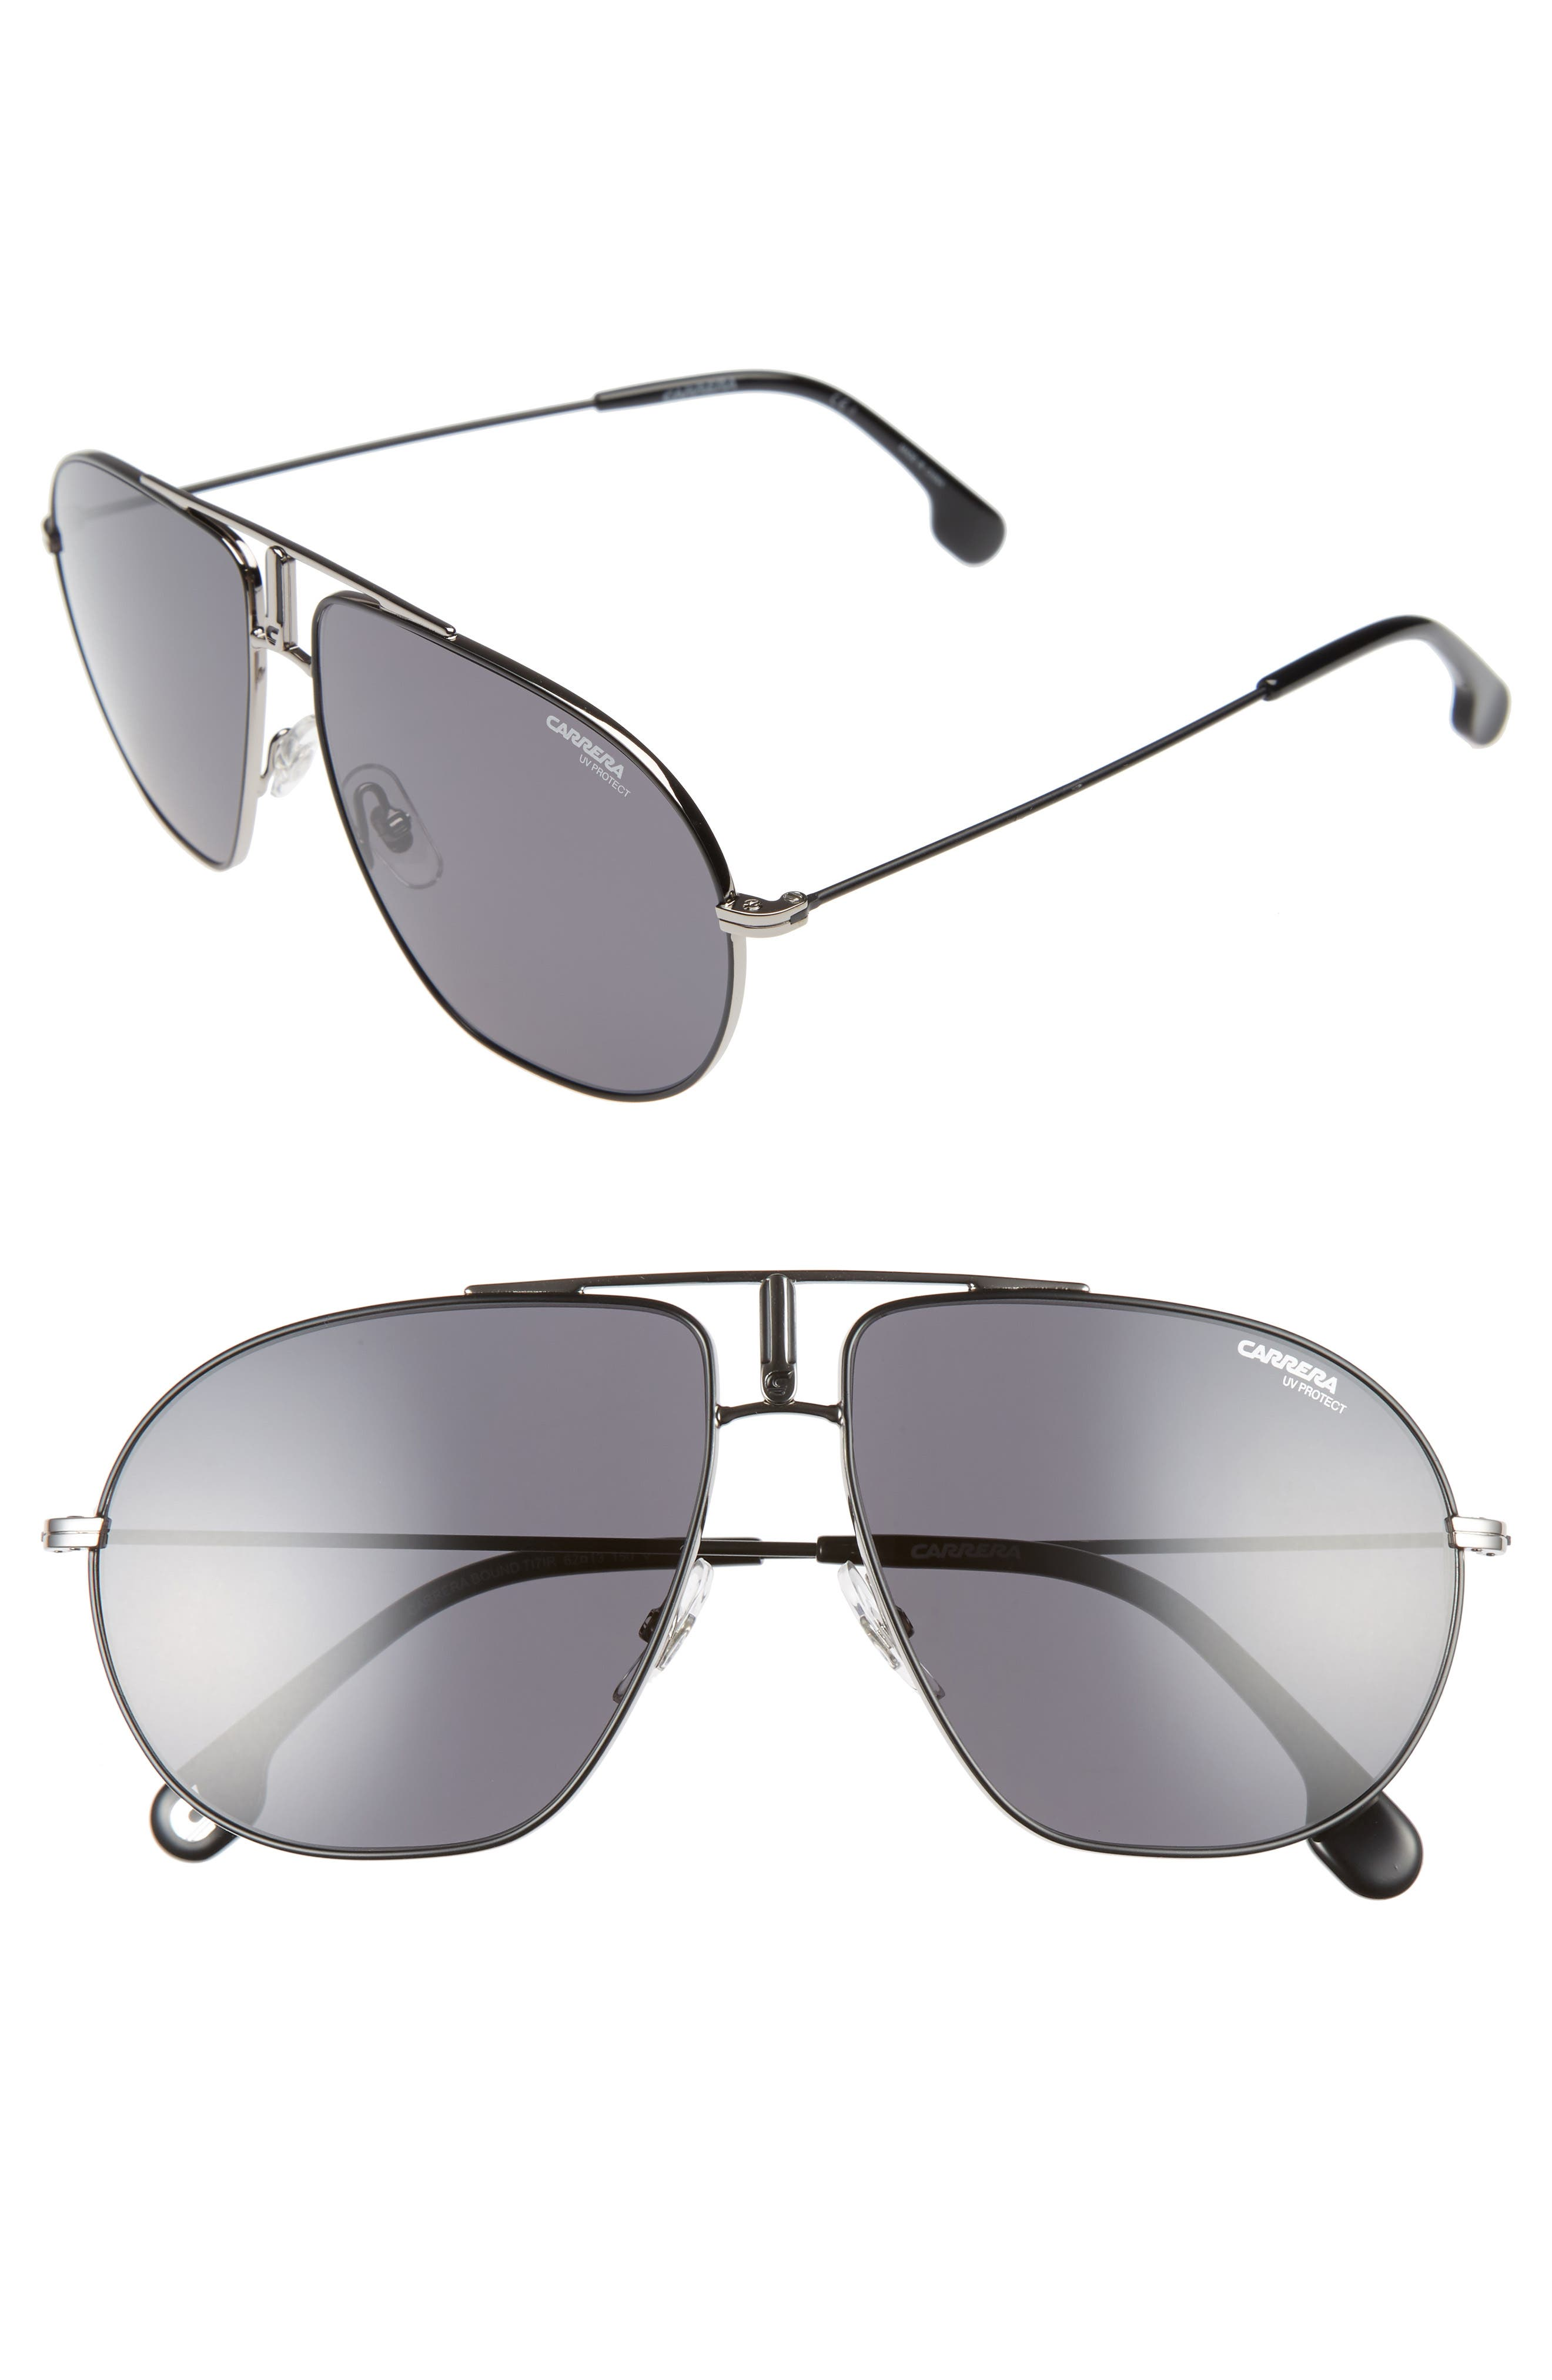 Carrera Eyewear Bounds 60Mm Gradient Aviator Sunglasses -